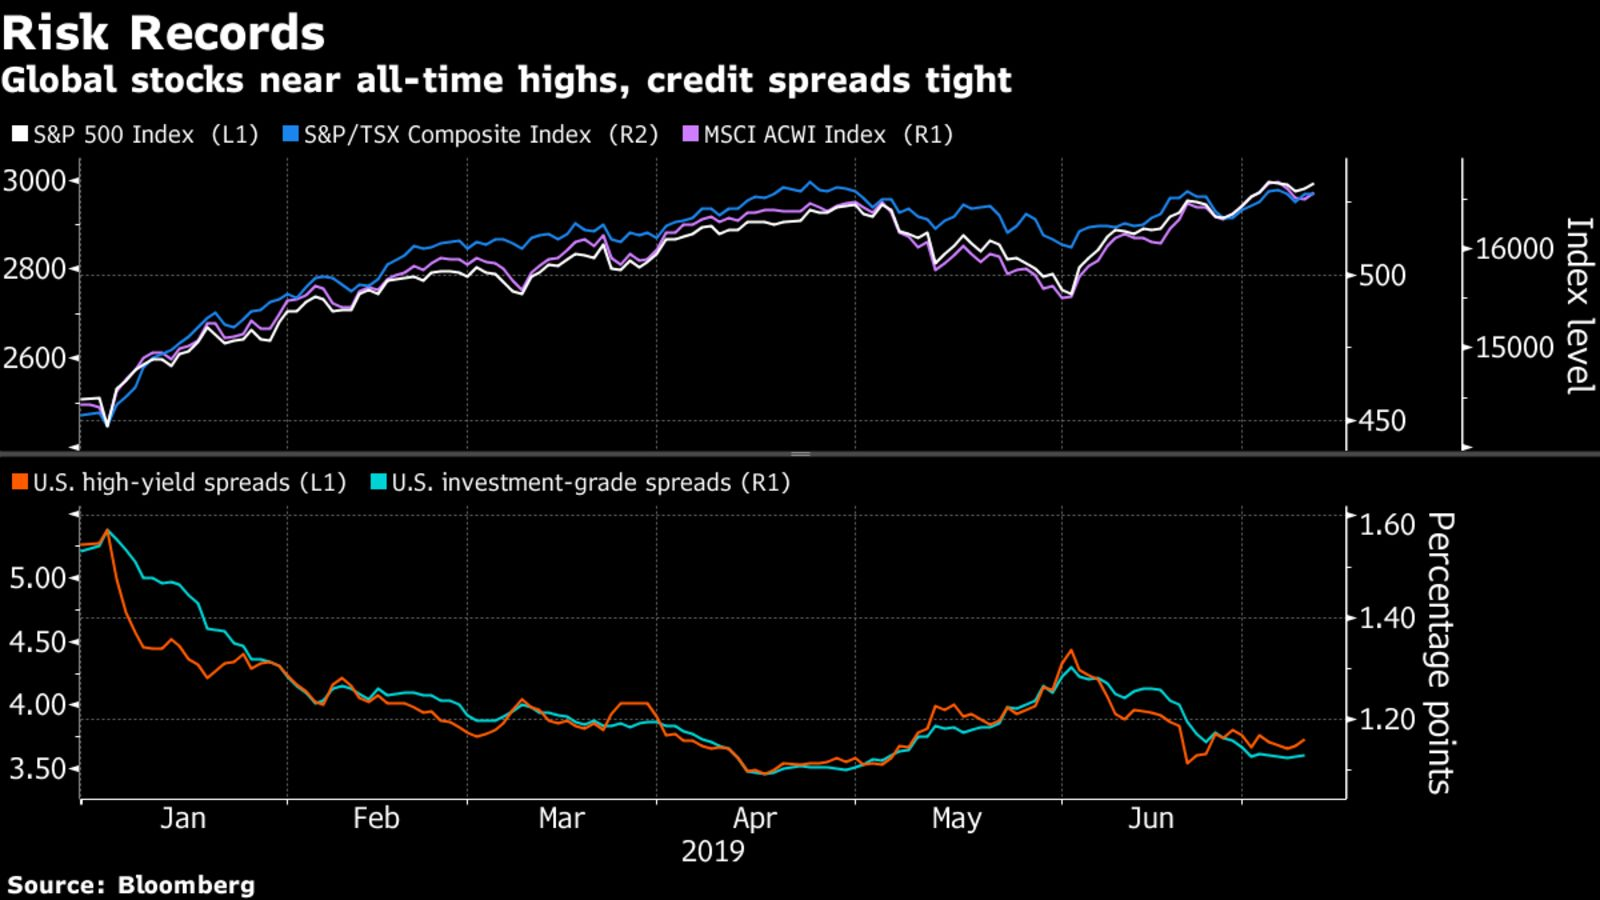 Global stocks near all-time highs, credit spreads tight